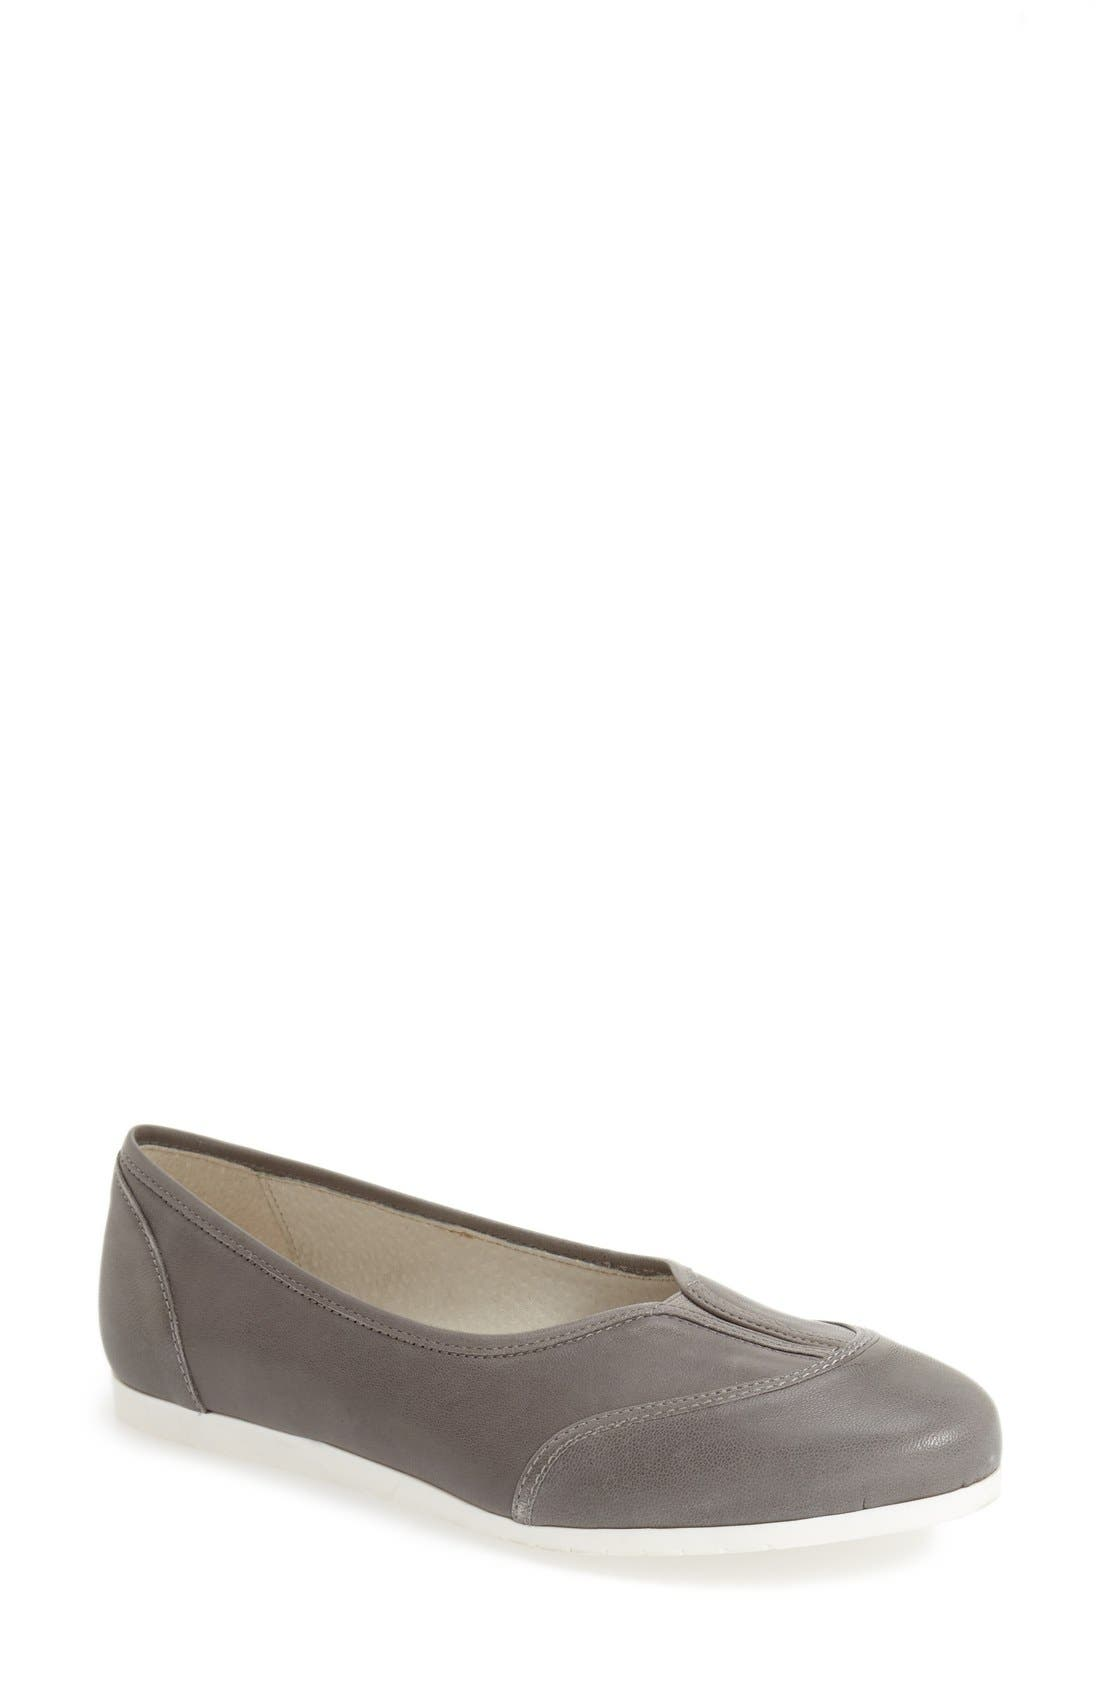 FRENCH SOLE 'Sport' Round Toe Flat